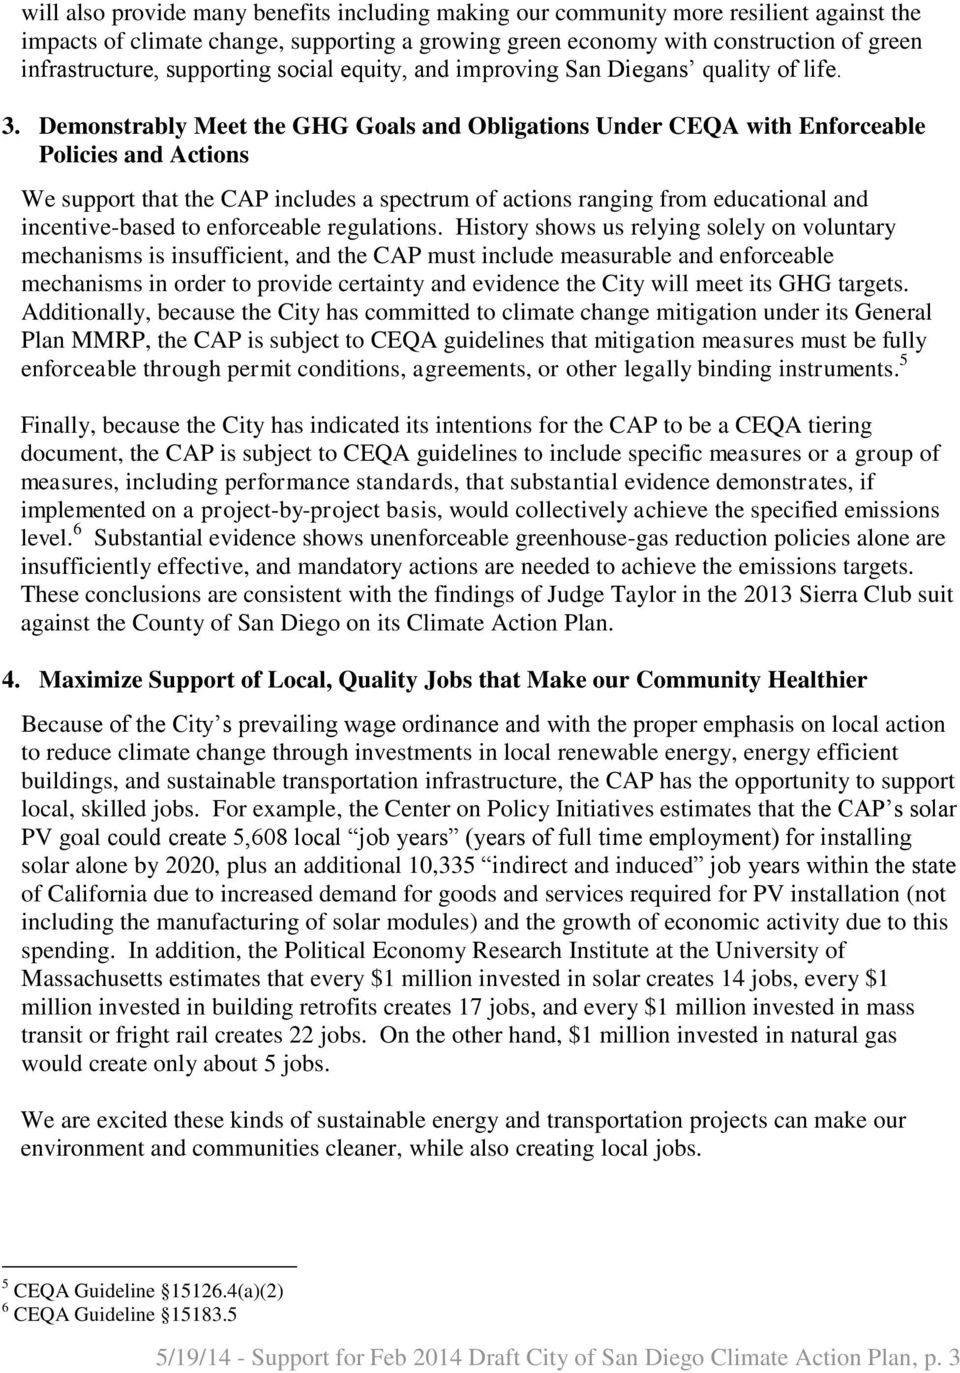 Demonstrably Meet the GHG Goals and Obligations Under CEQA with Enforceable Policies and Actions We support that the CAP includes a spectrum of actions ranging from educational and incentive-based to